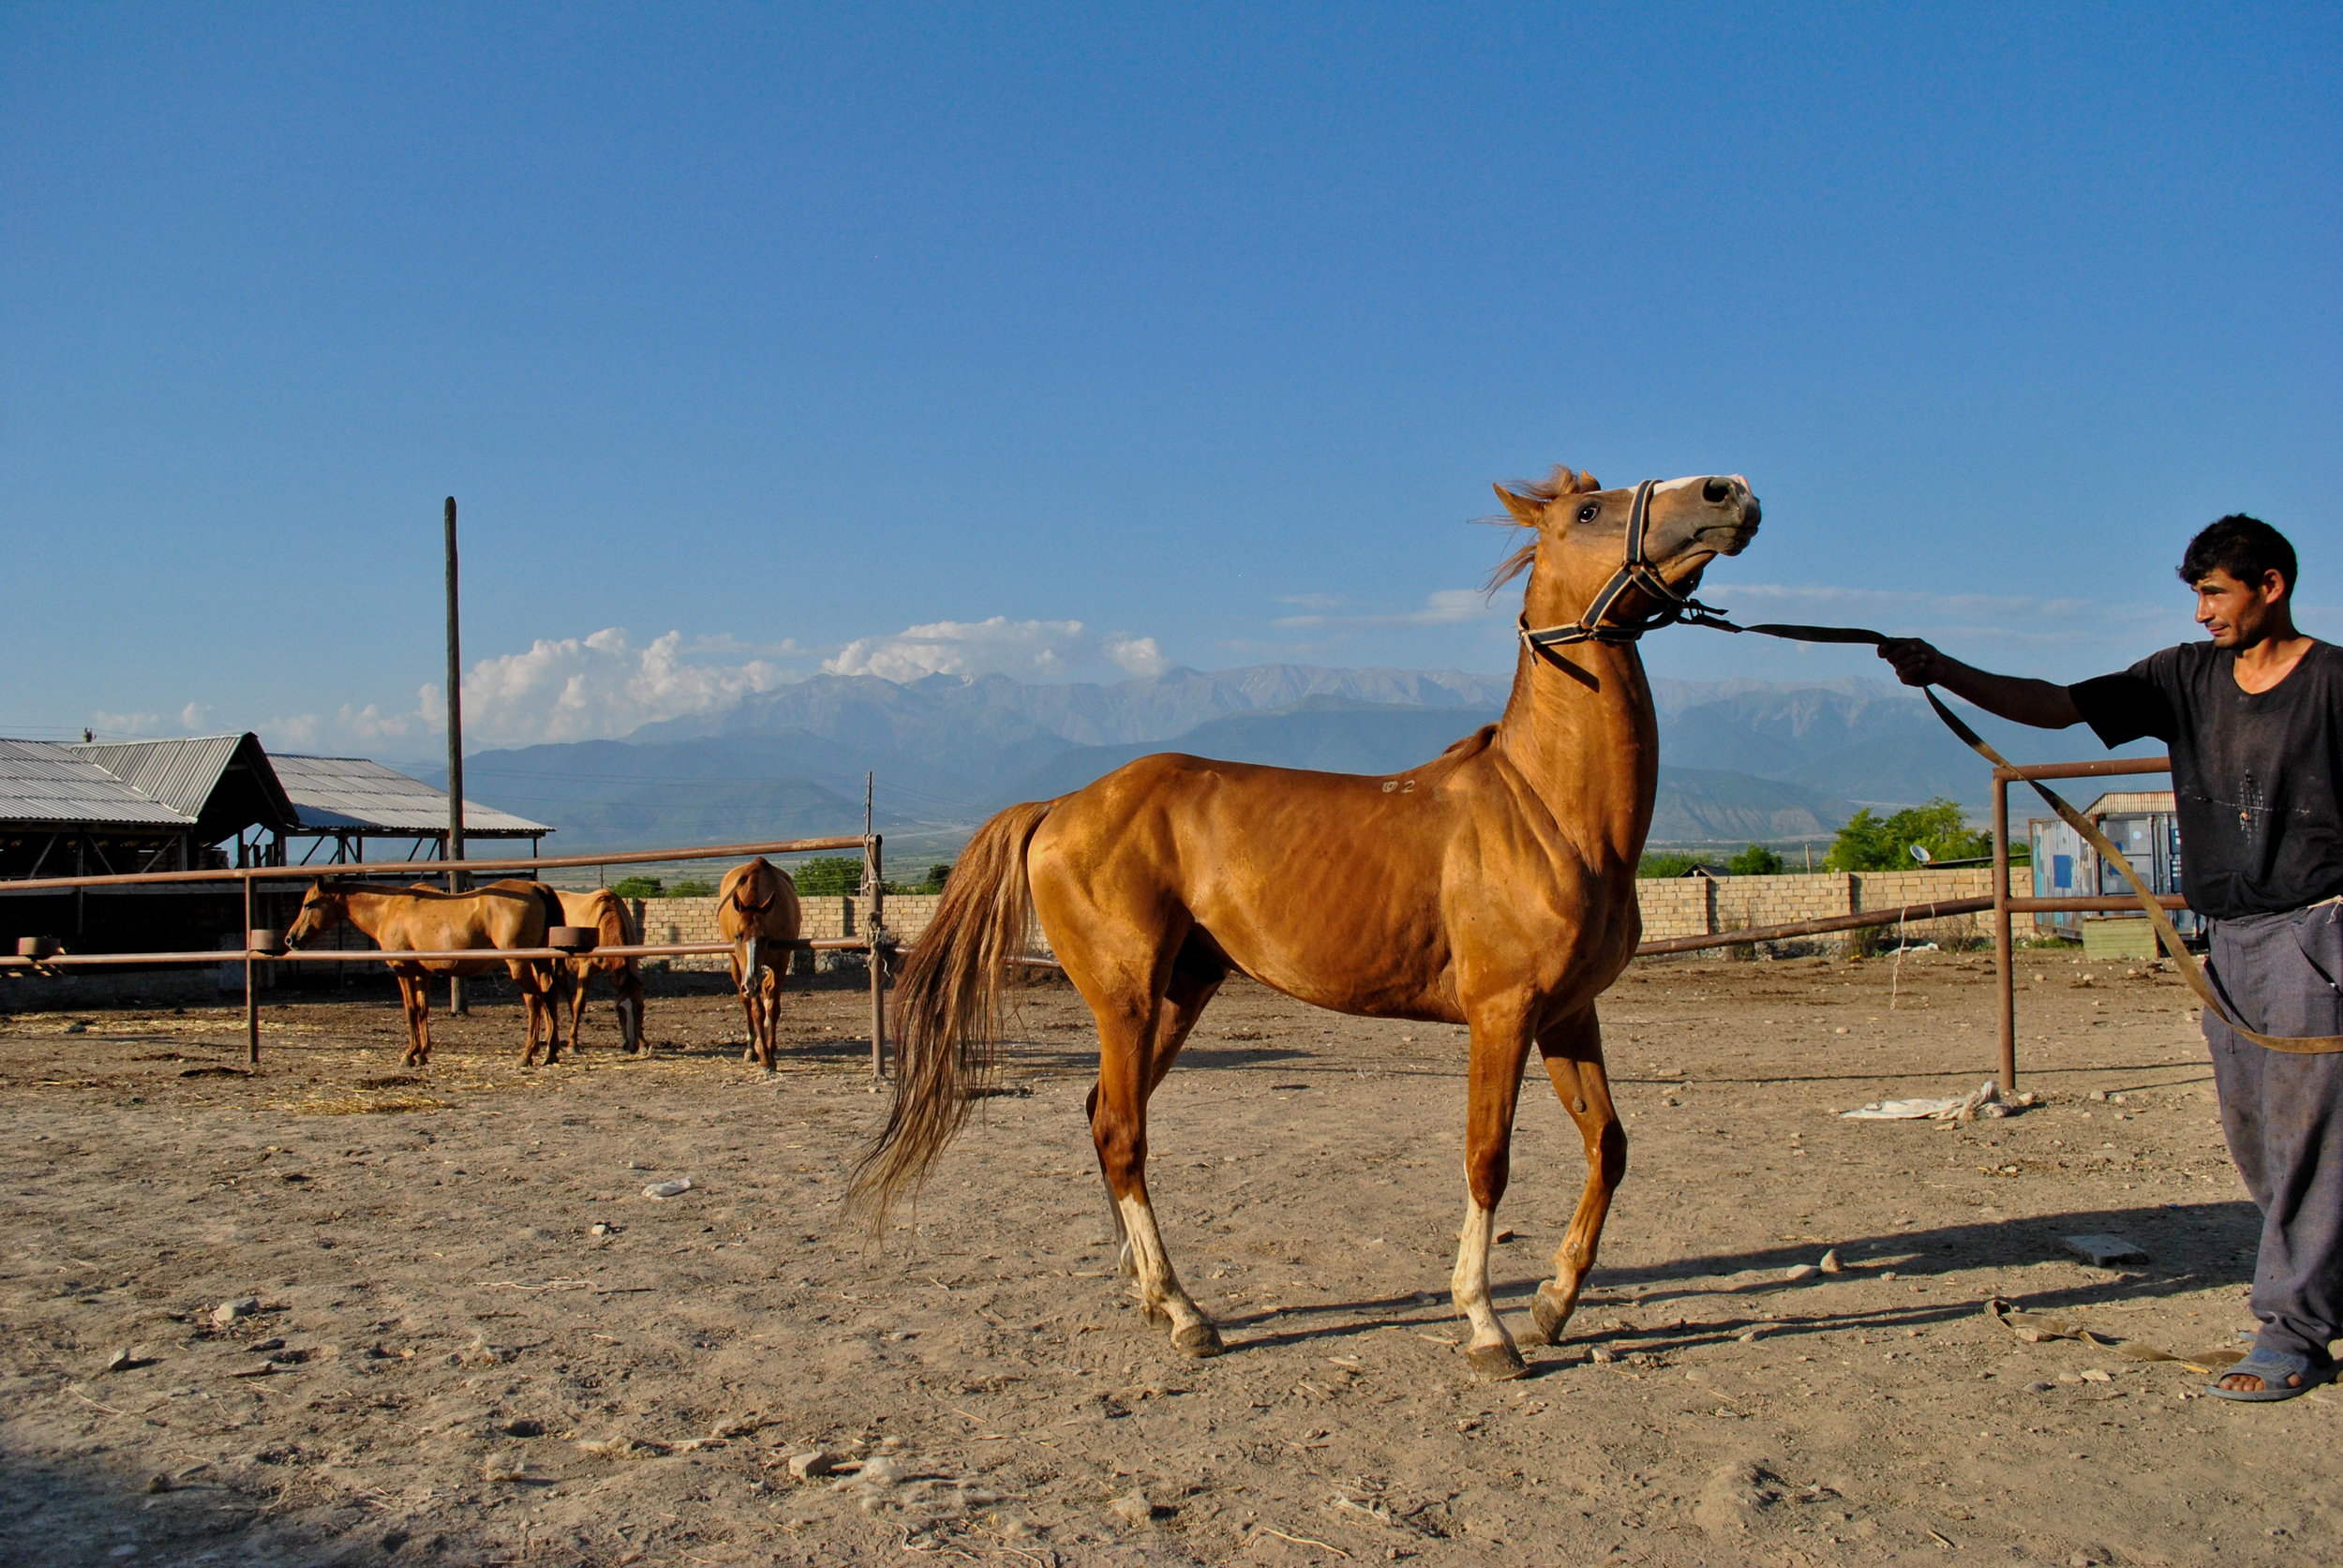 One of the few remaining Karabagh horses - a breed that was almost extinguished during the Azerbaijan-Armenian war in the 1990's.